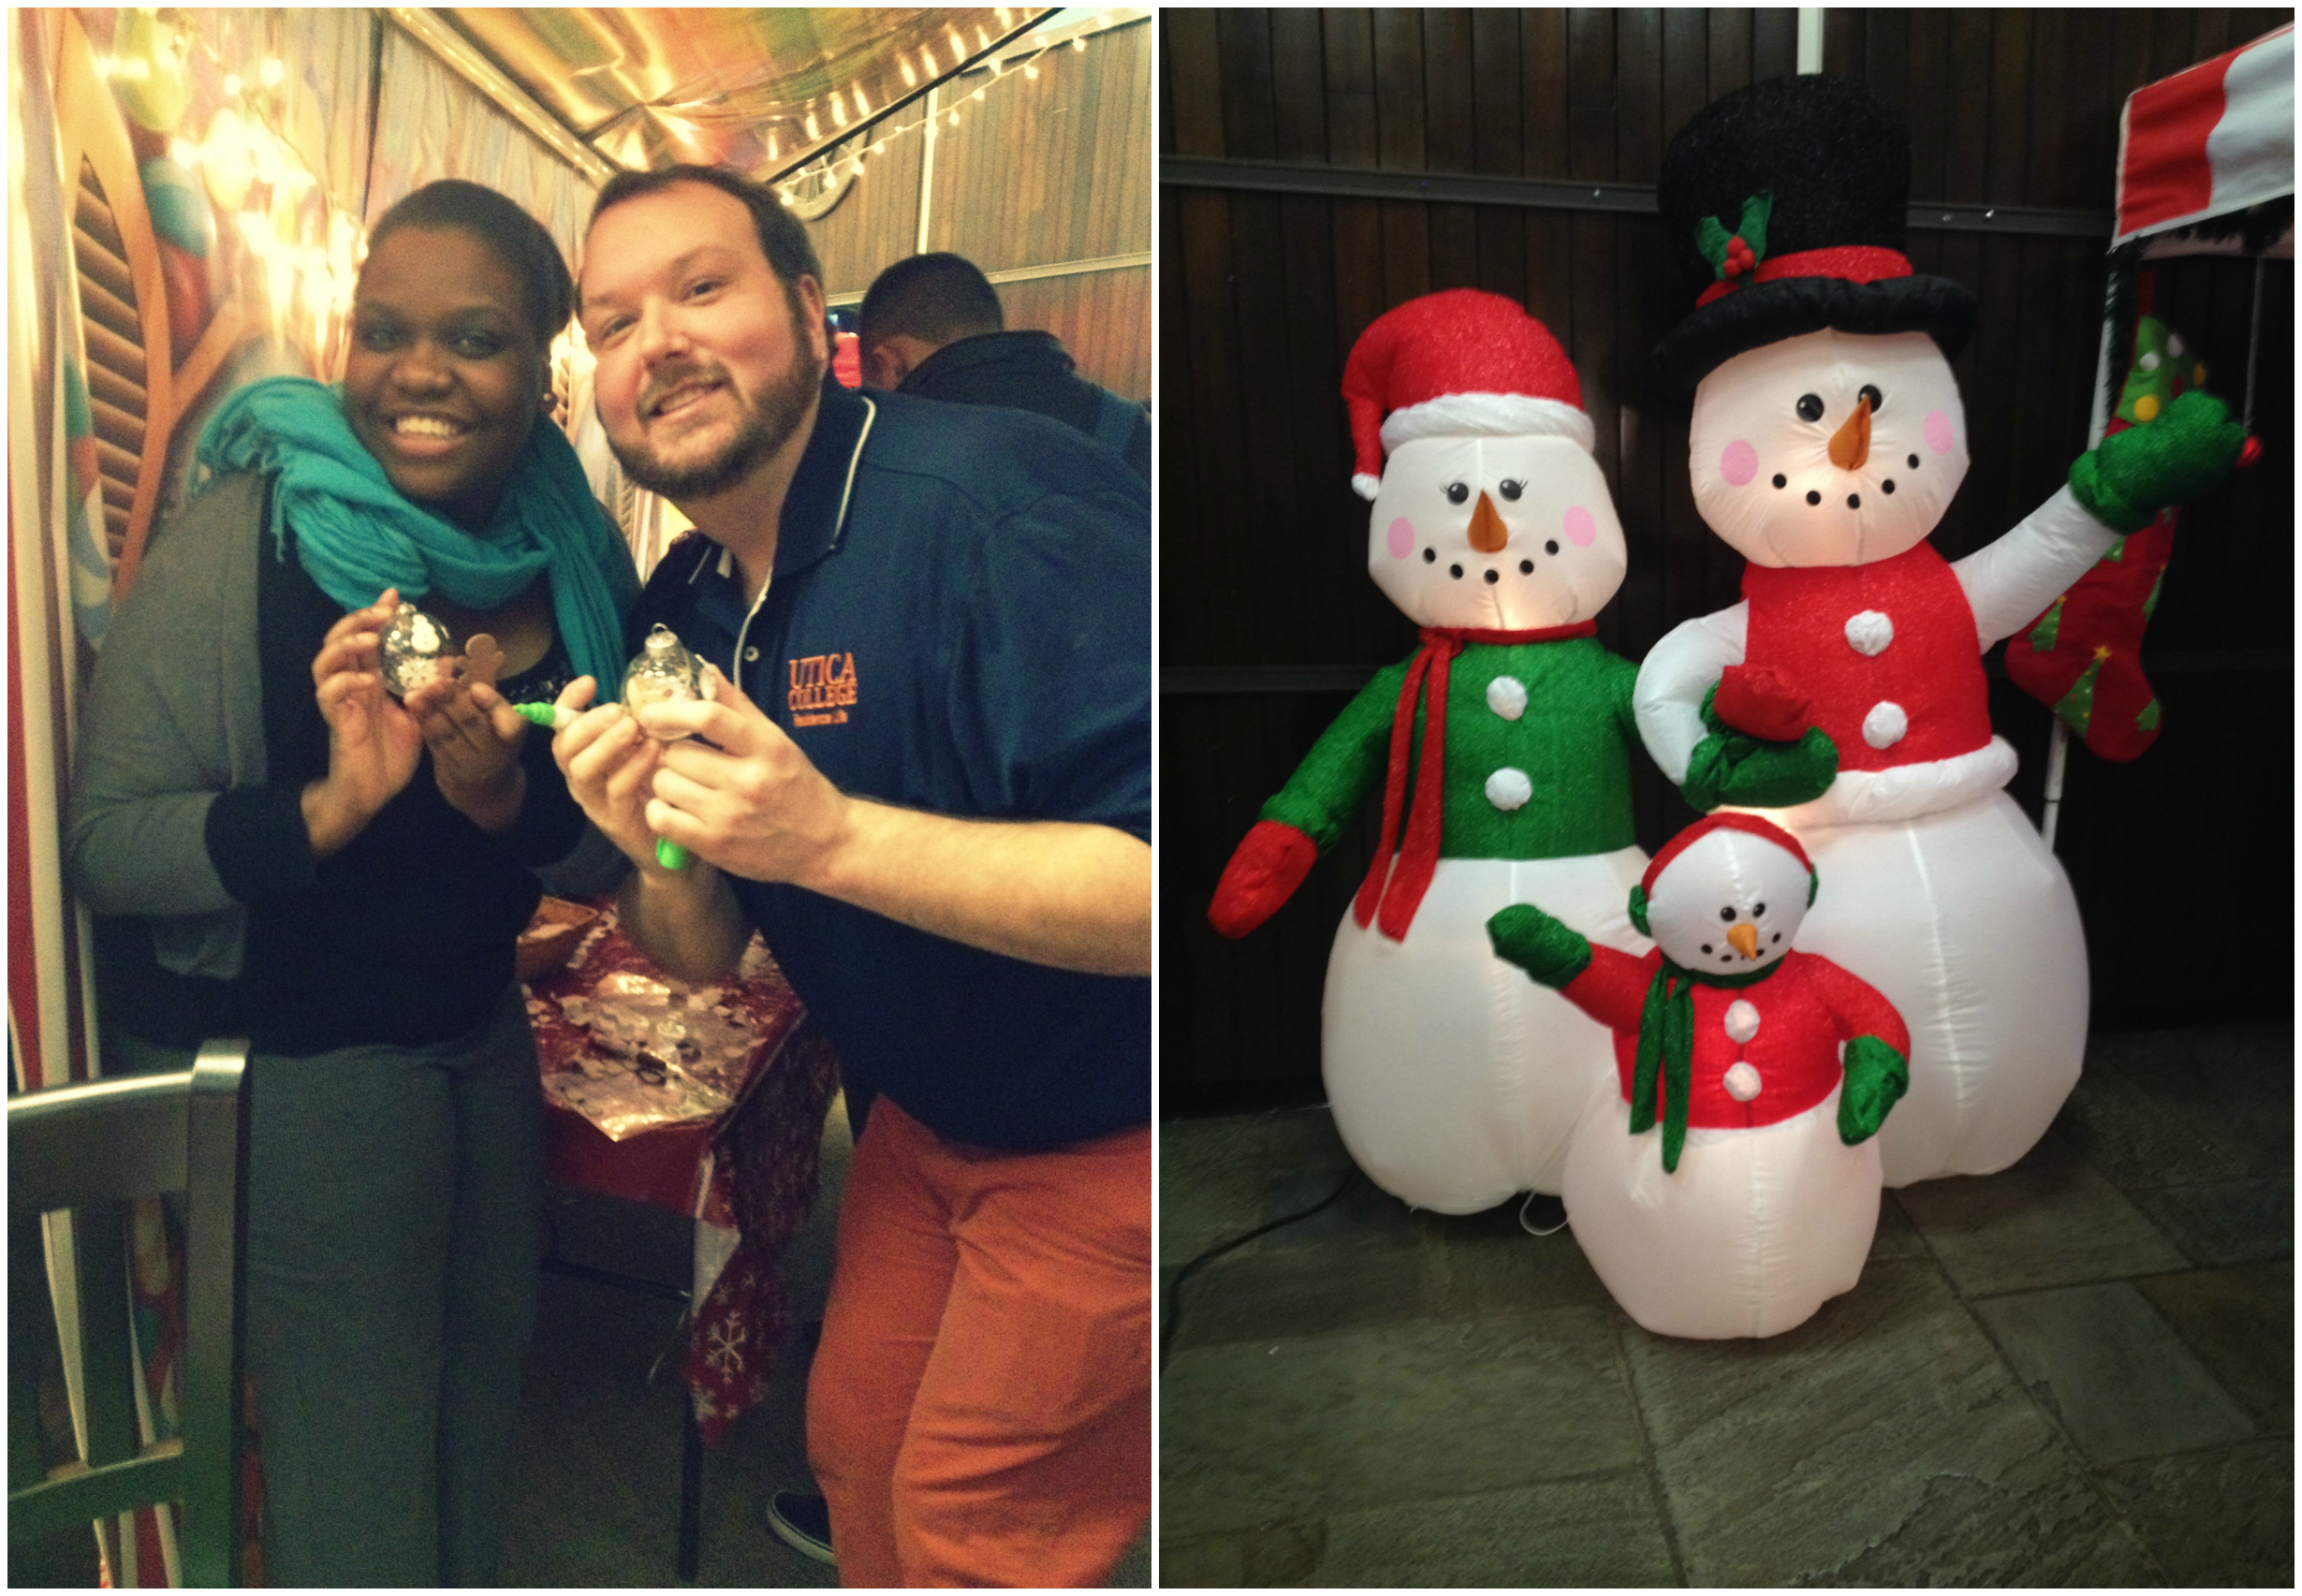 The lovely Courtney Witherspoon and amazing Derek Pooley making some ornaments (left). Some happy snowmen jazzing up Strebel (right).